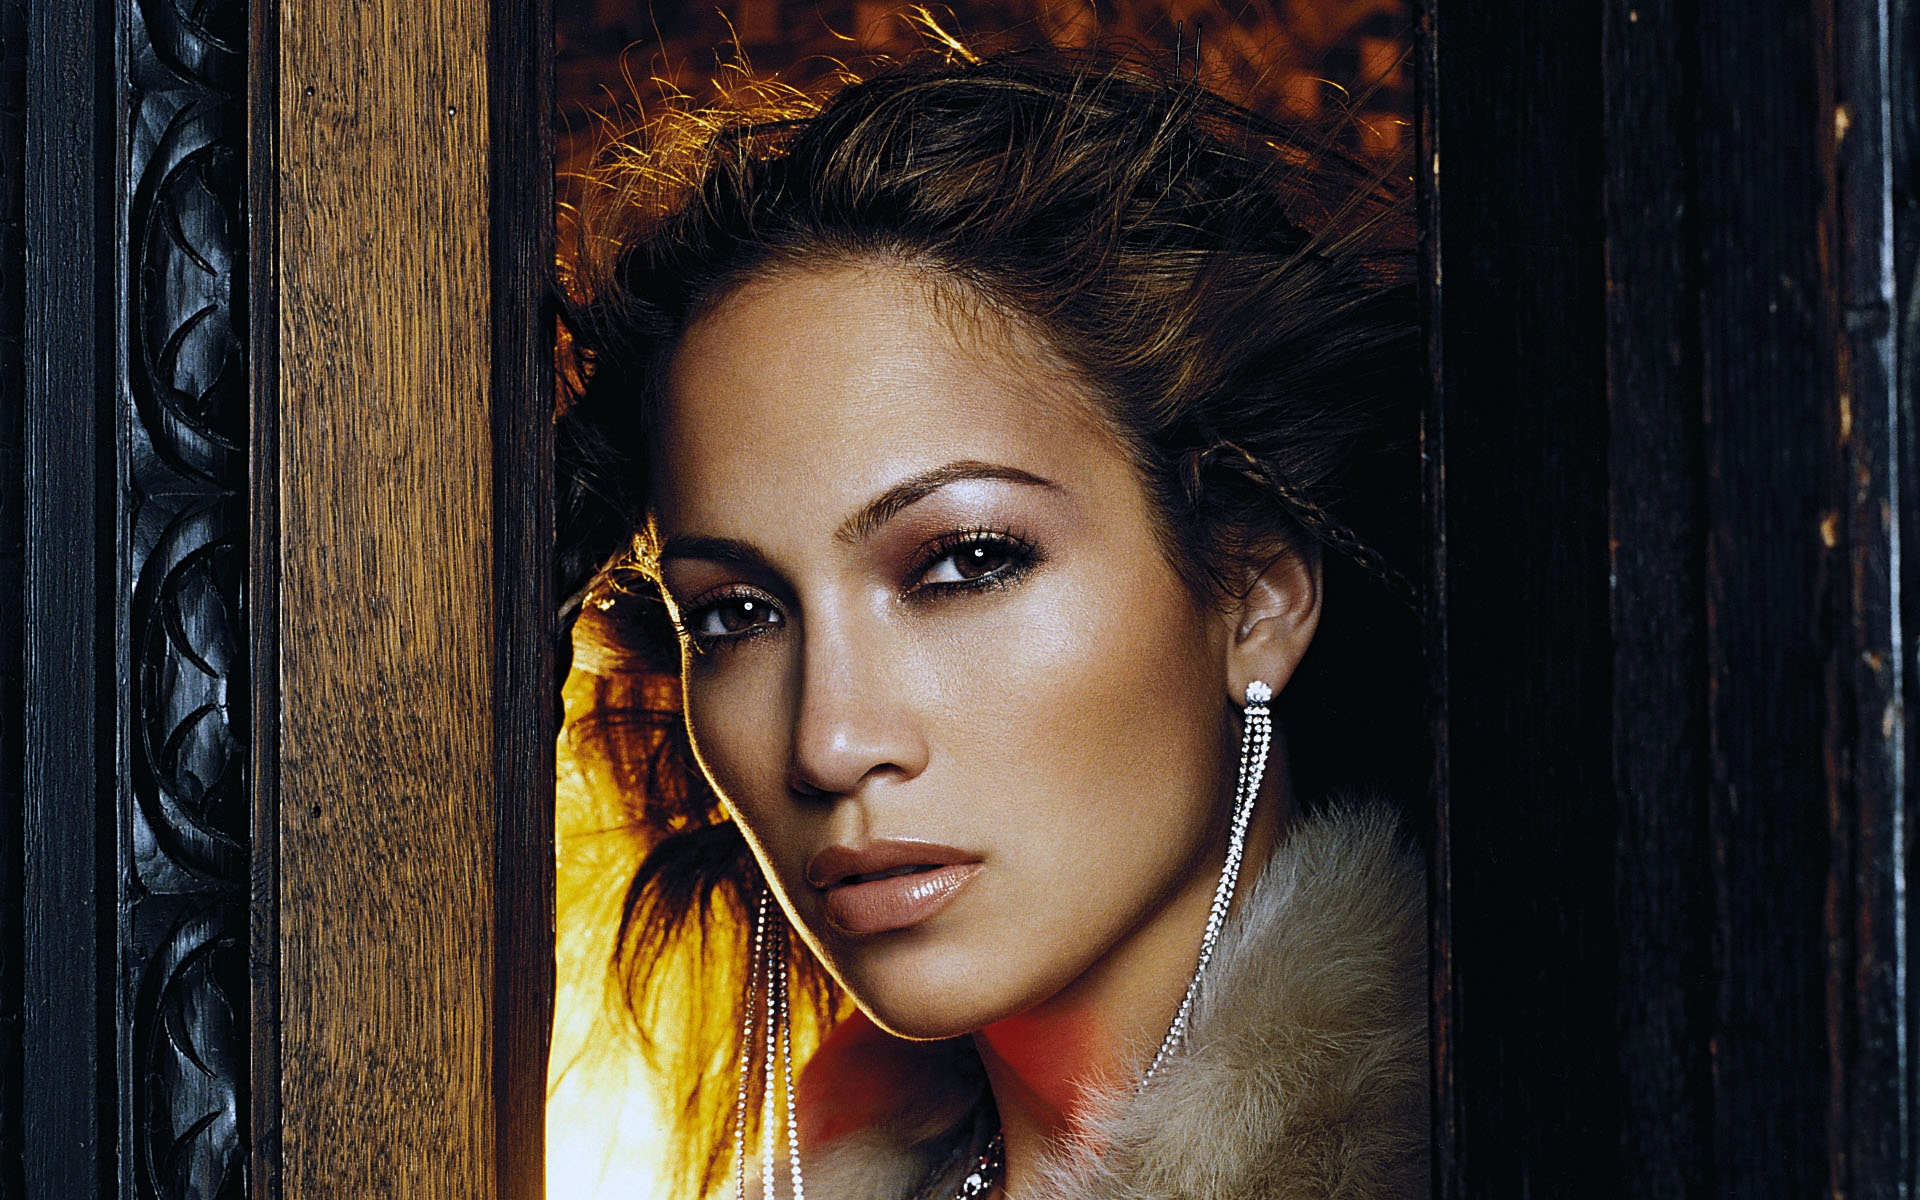 Jennifer Lopez 50 177.92 Kb